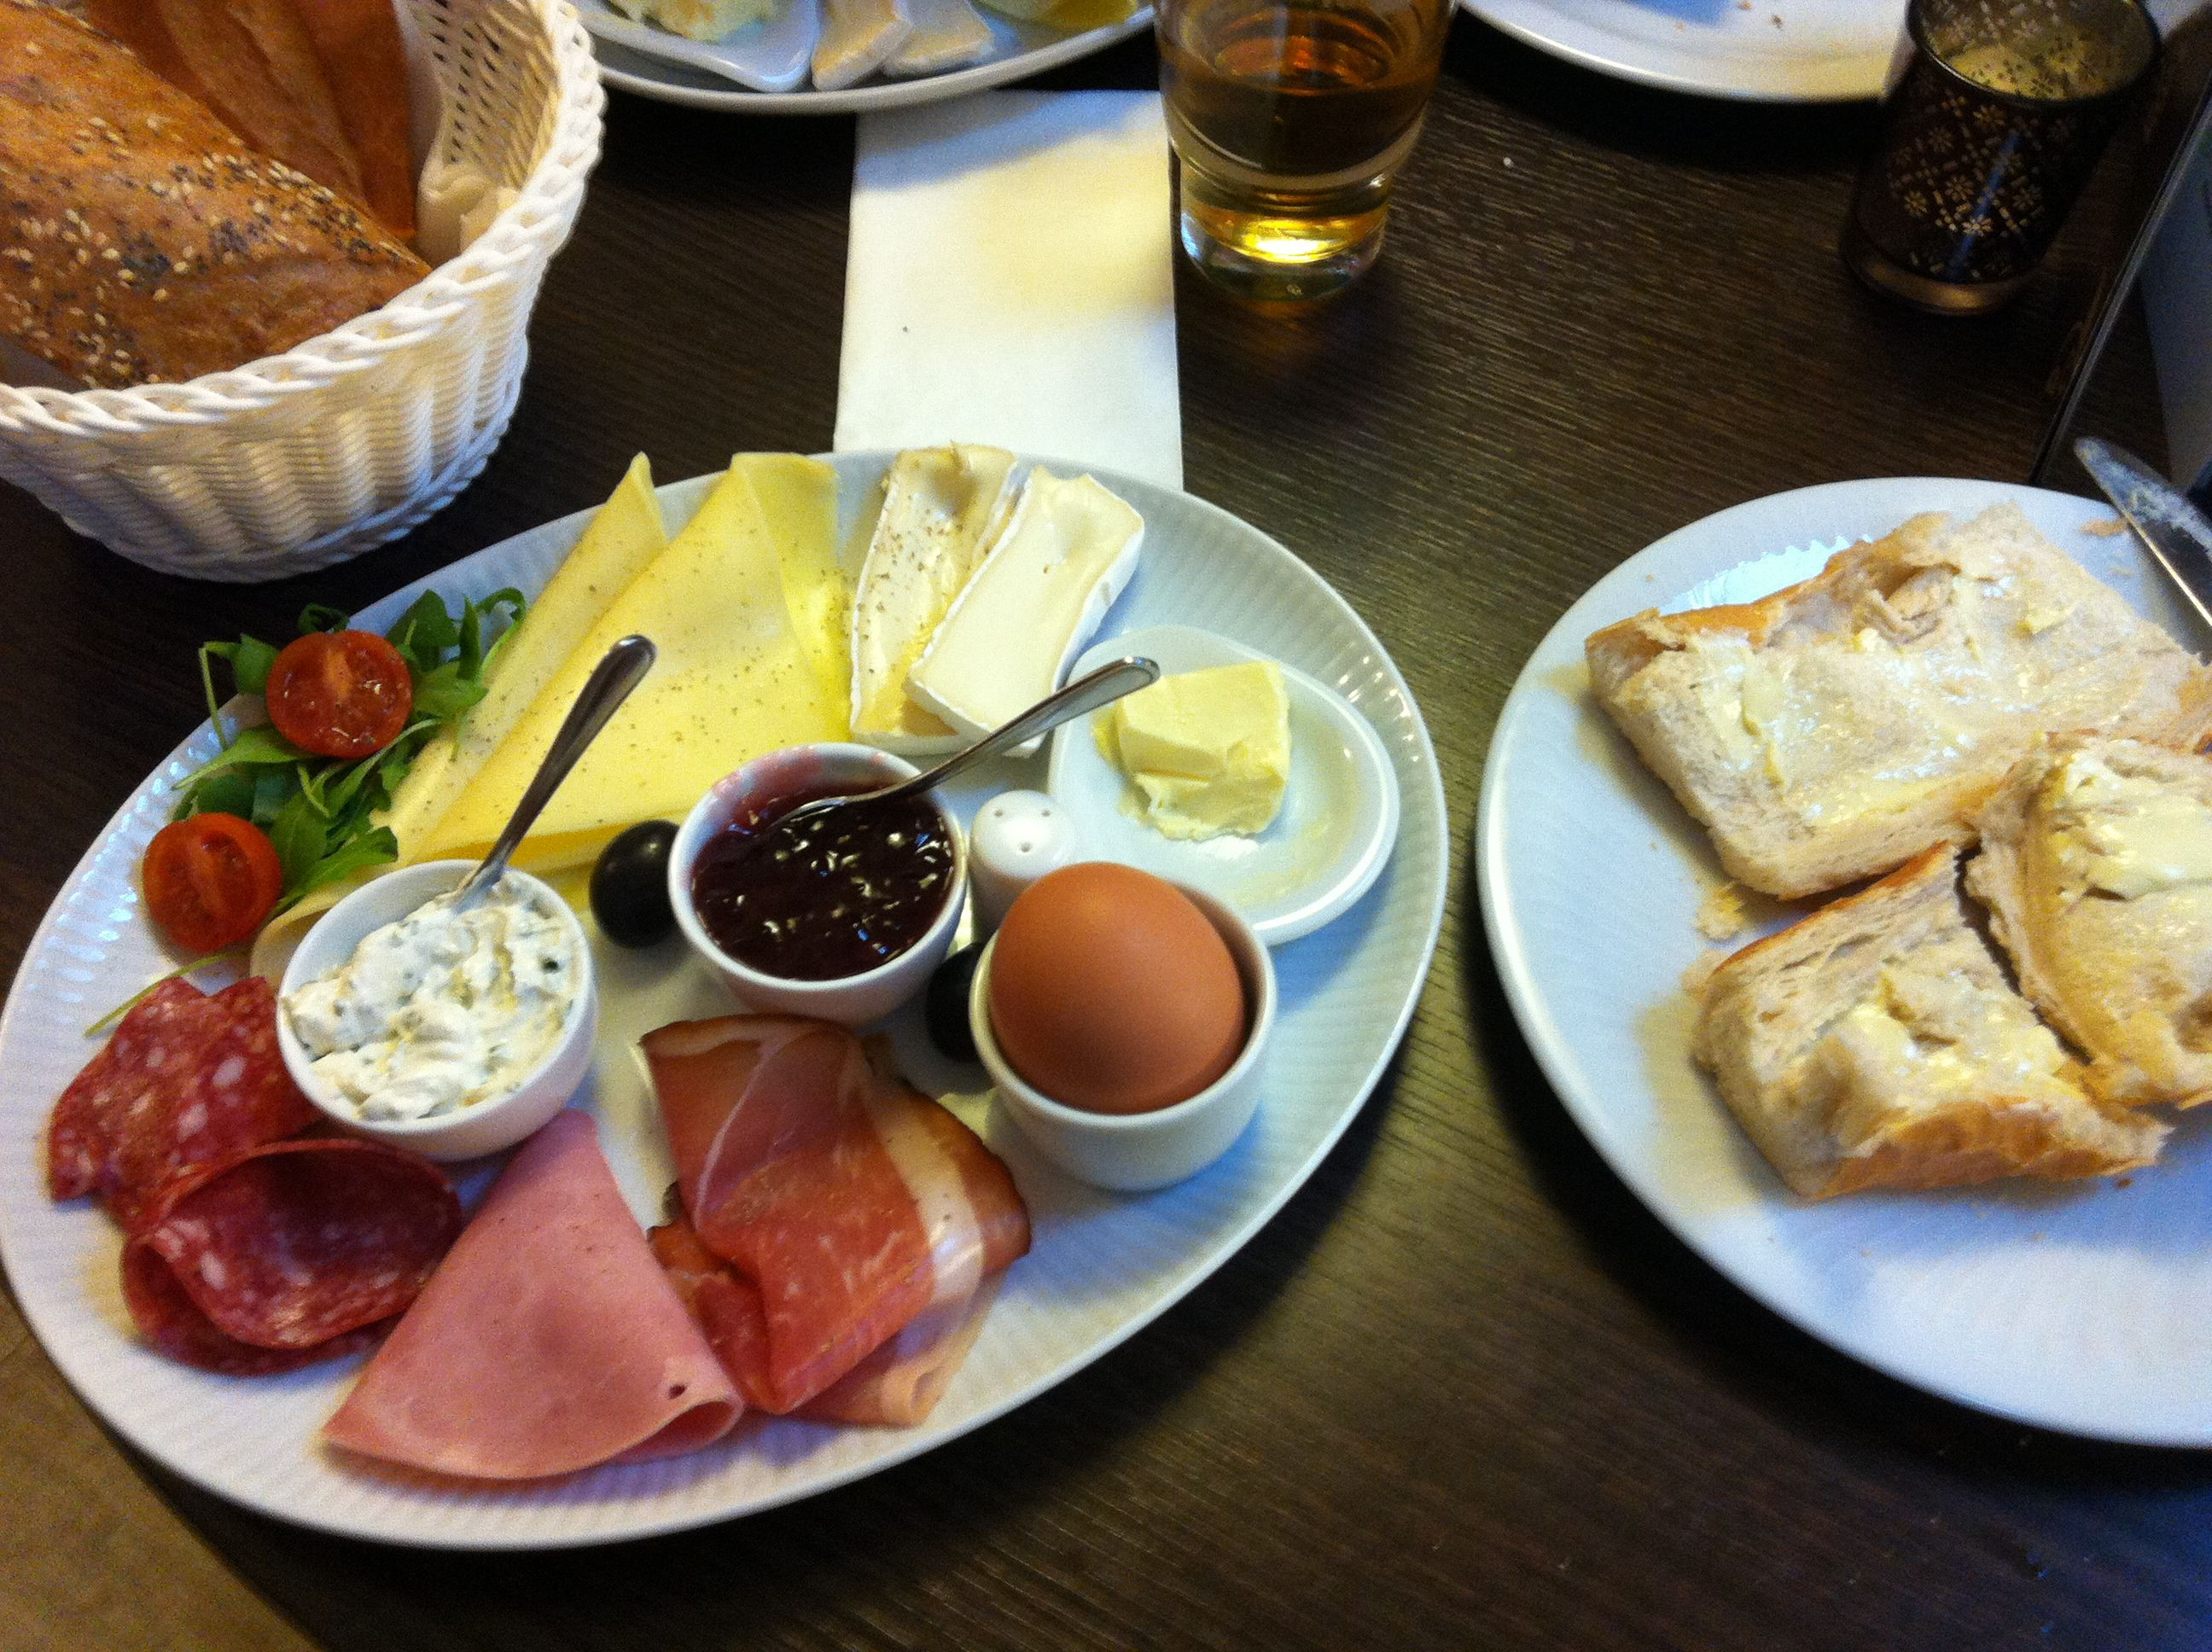 european breakfasts are the best; cold meats, cheeses, tomatoes